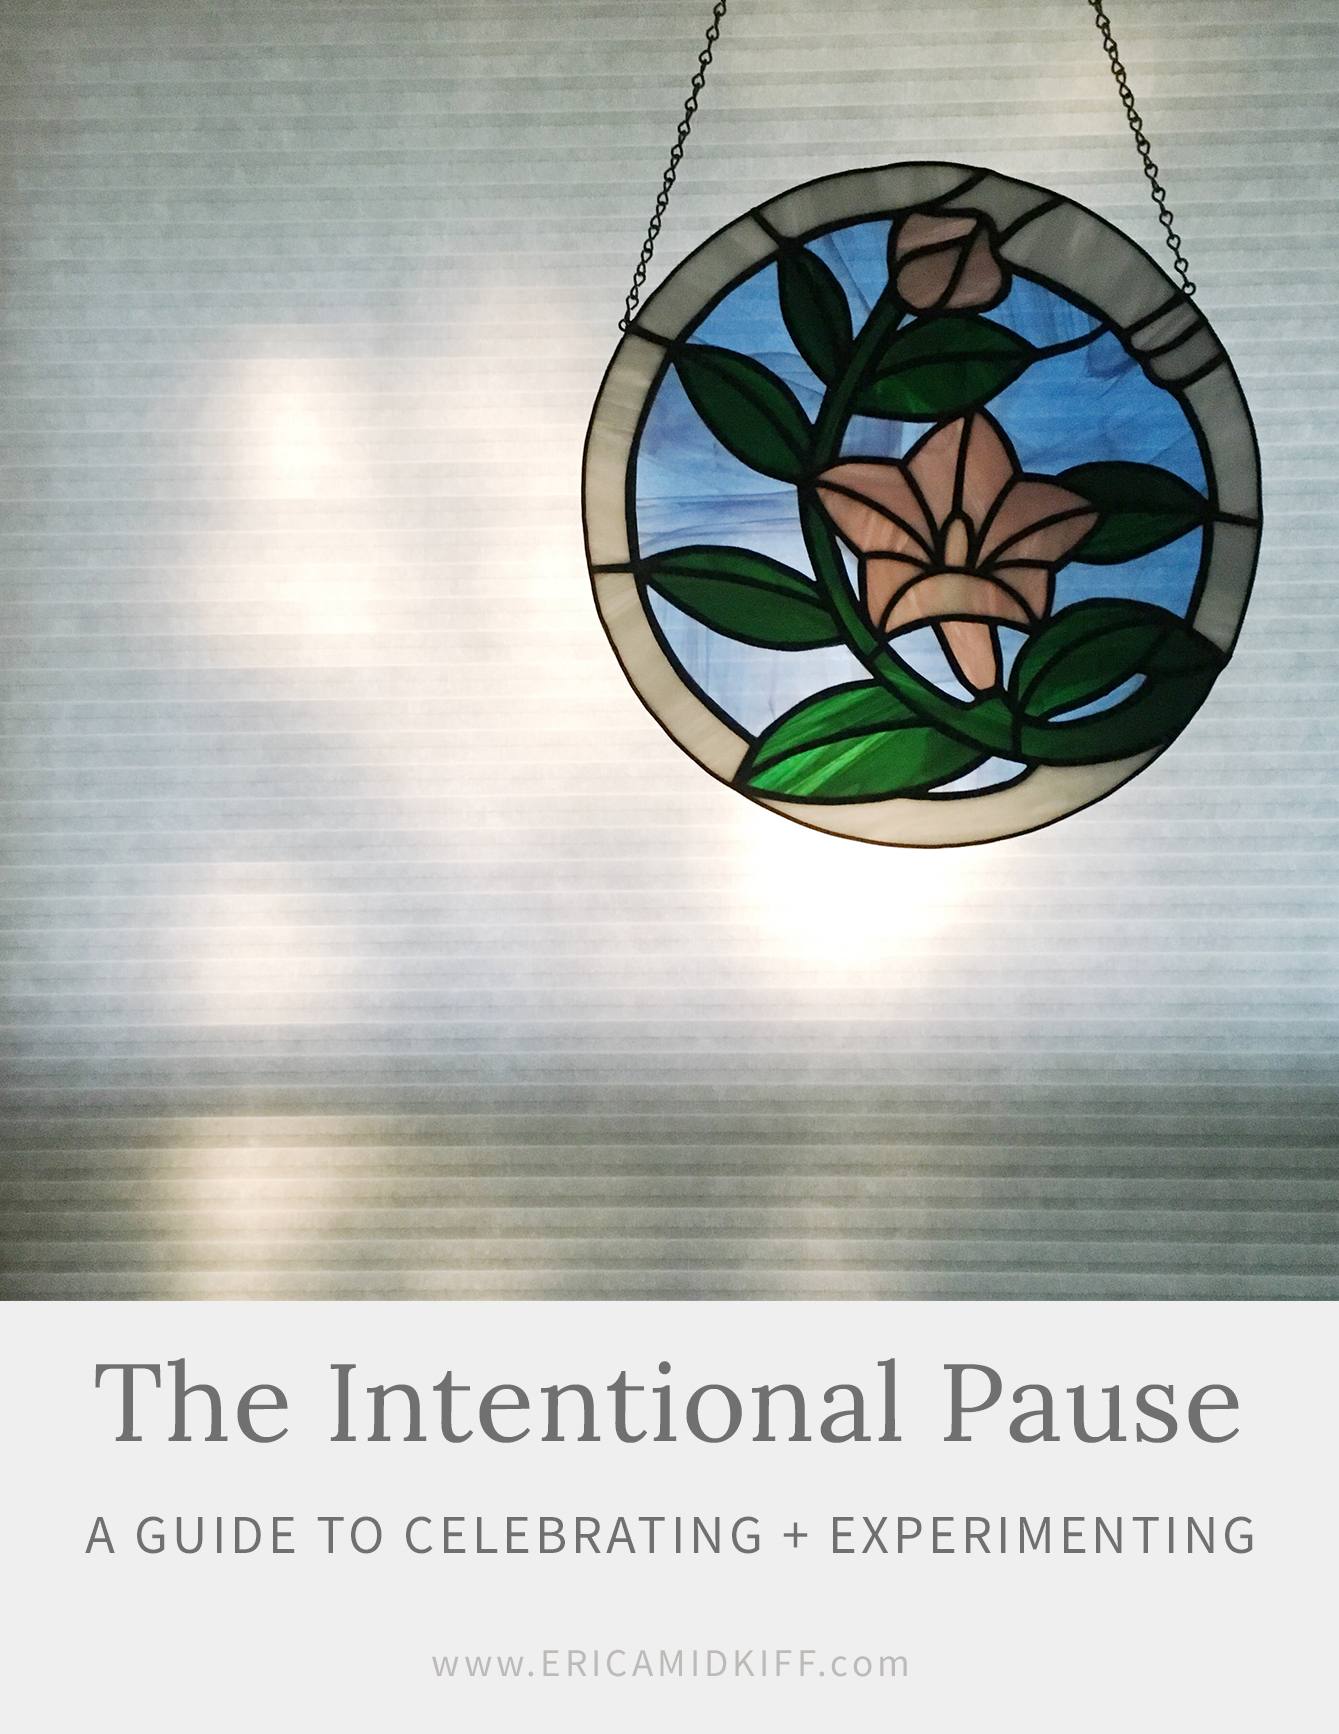 Intentional Pause Guide - by Erica Midkiff.jpg